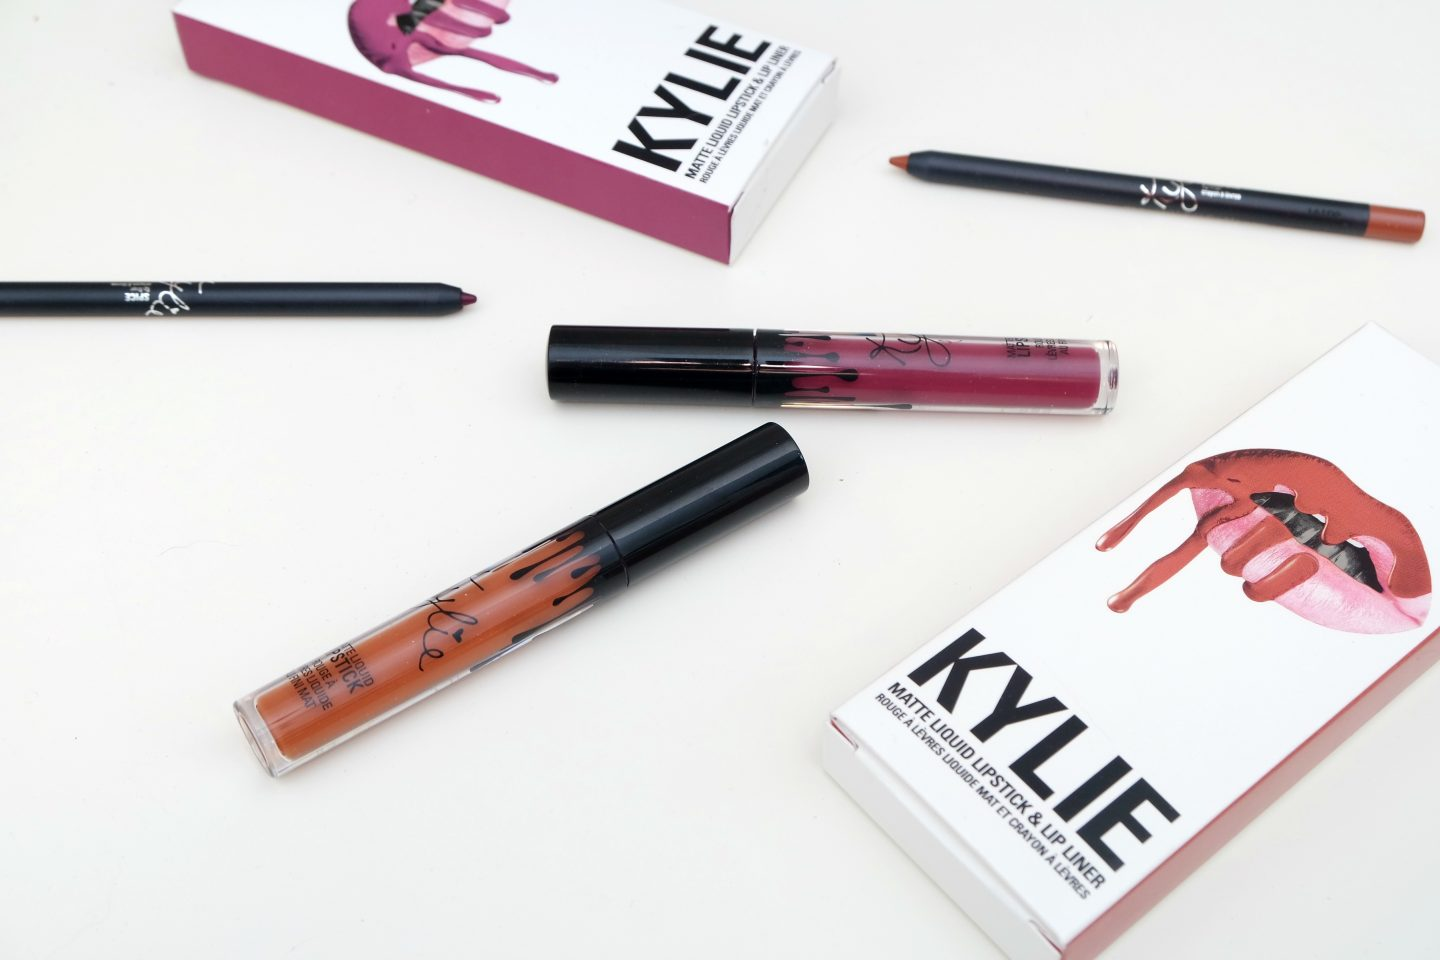 Kylie Cosmetics Pumpkin and Spice Lip Kits